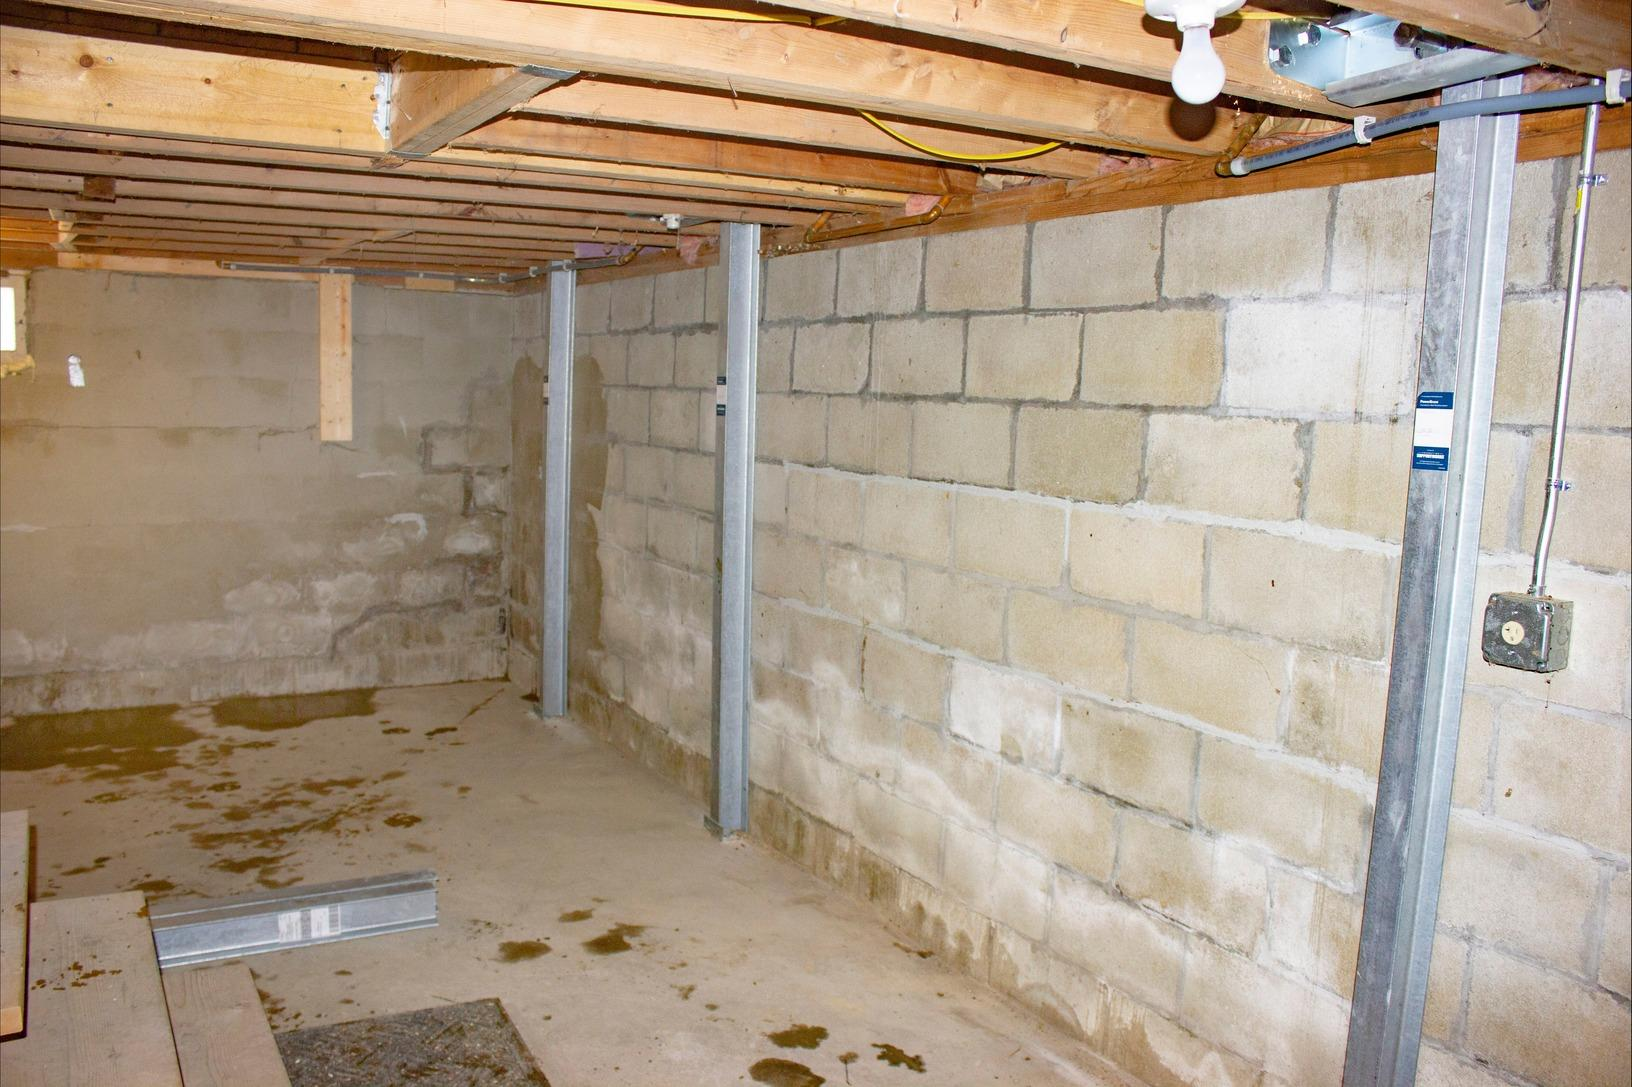 Basement Wall Problems solved in Middlebury, Vermont. - After Photo